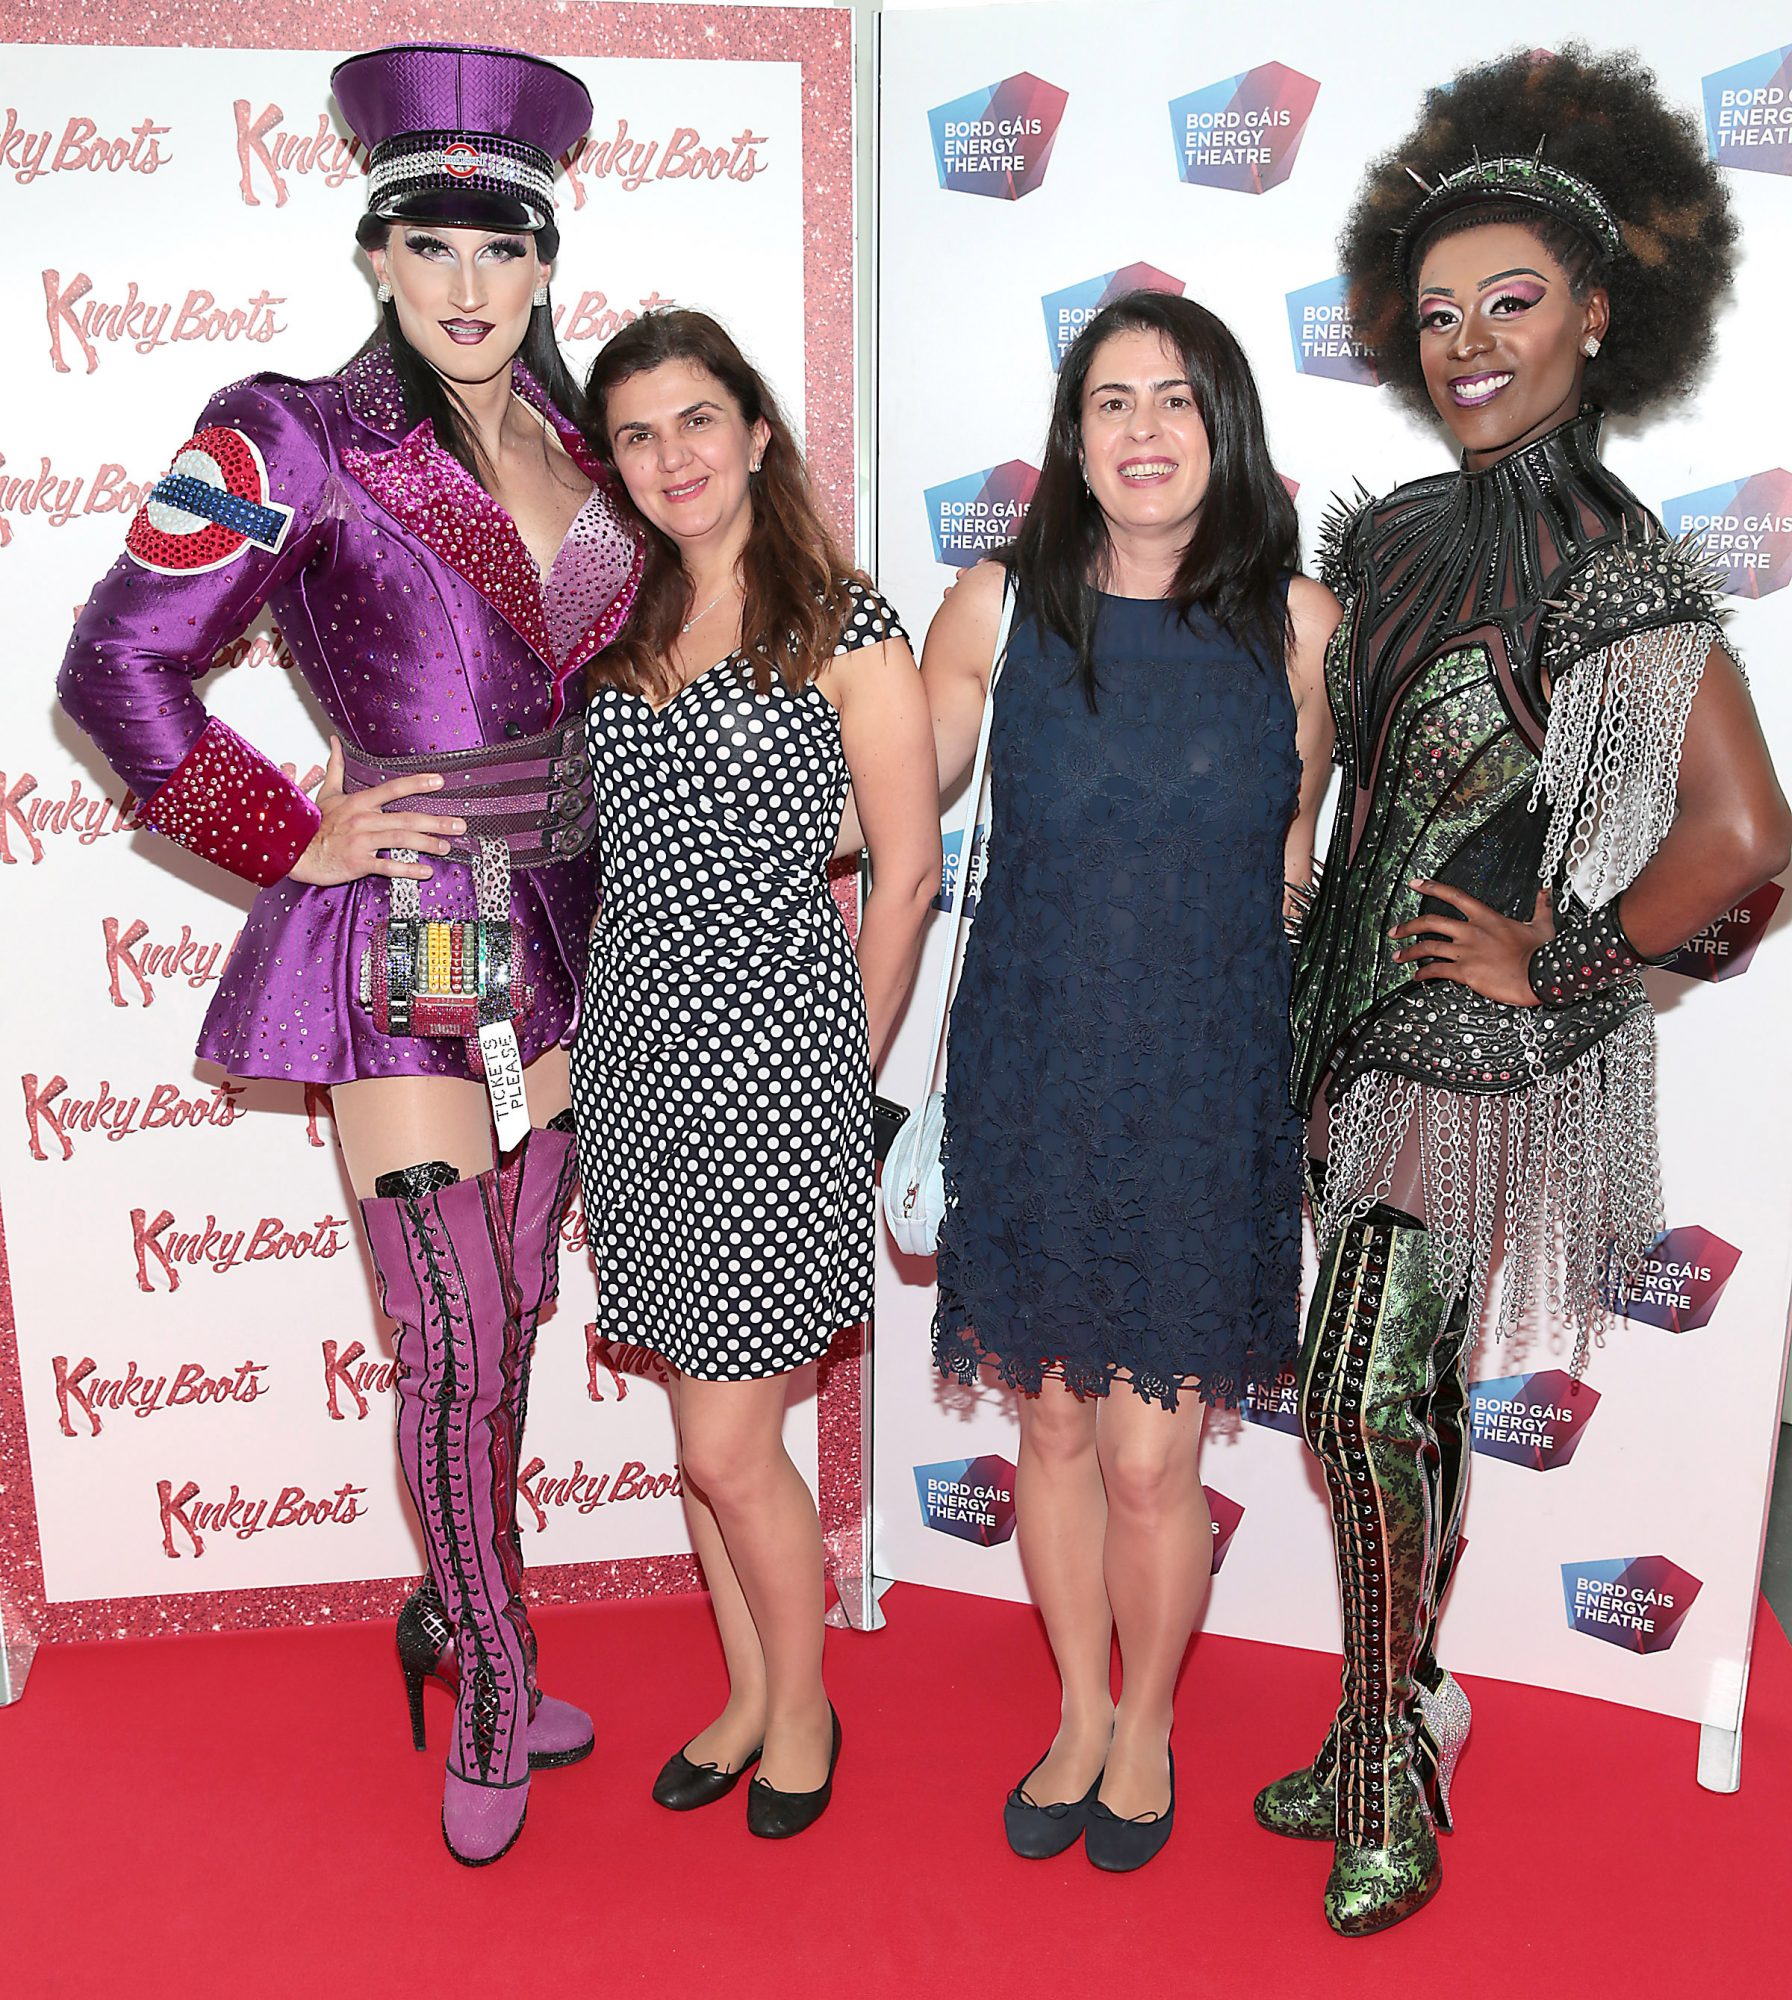 Jason Leigh Winters ,Lumi Vitca, Camelia Tamas and Jacob McIntosh at the opening of the musical Kinky Boots at the Bord Gais Energy Theatre, Dublin.  Picture: Brian McEvoy